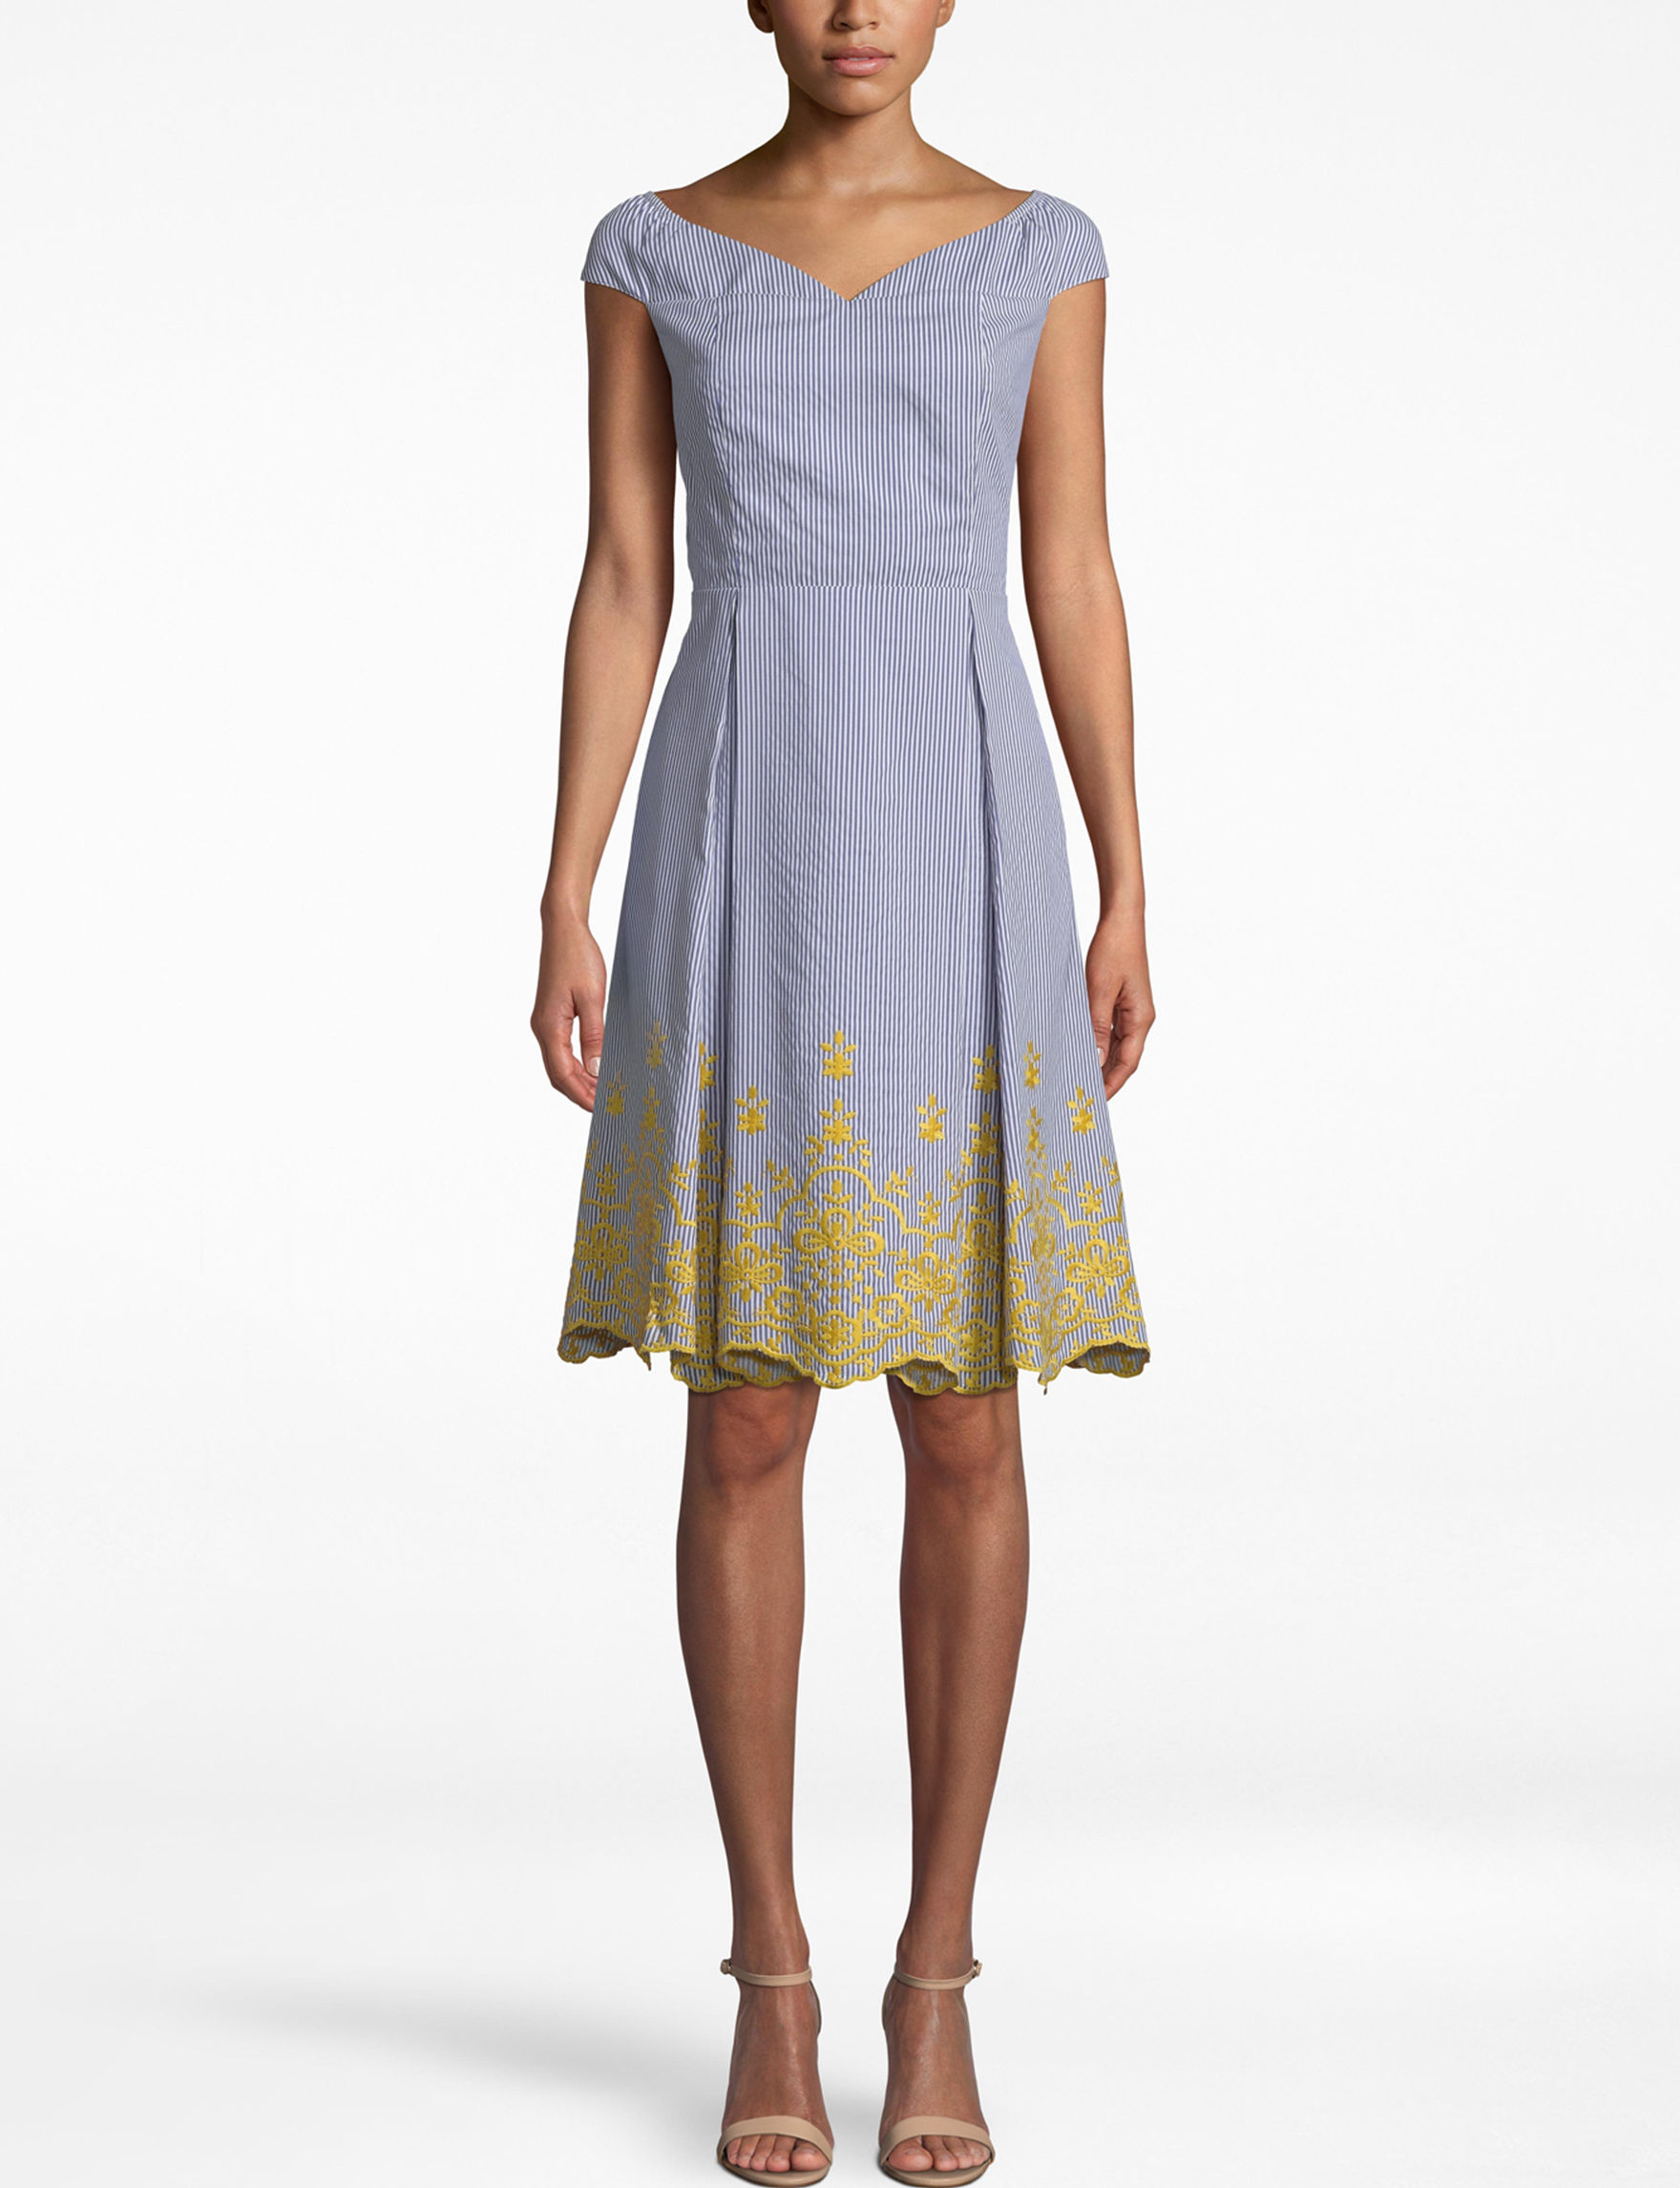 Nicole Miller Blue / Yellow Everyday & Casual A-line Dresses